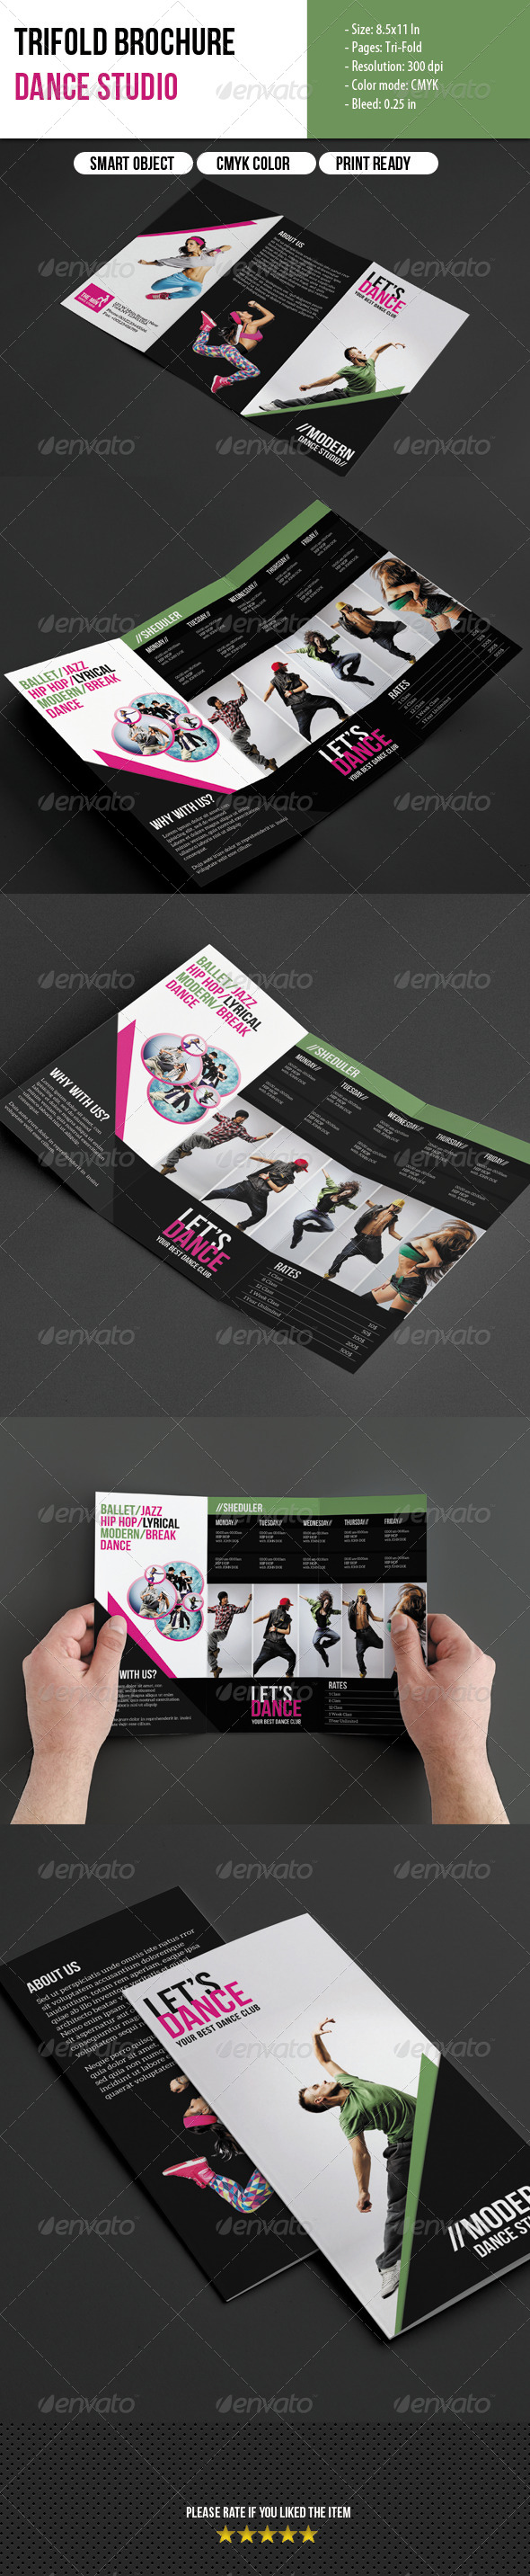 GraphicRiver Trifold Brochure-Dance Studio 6704614